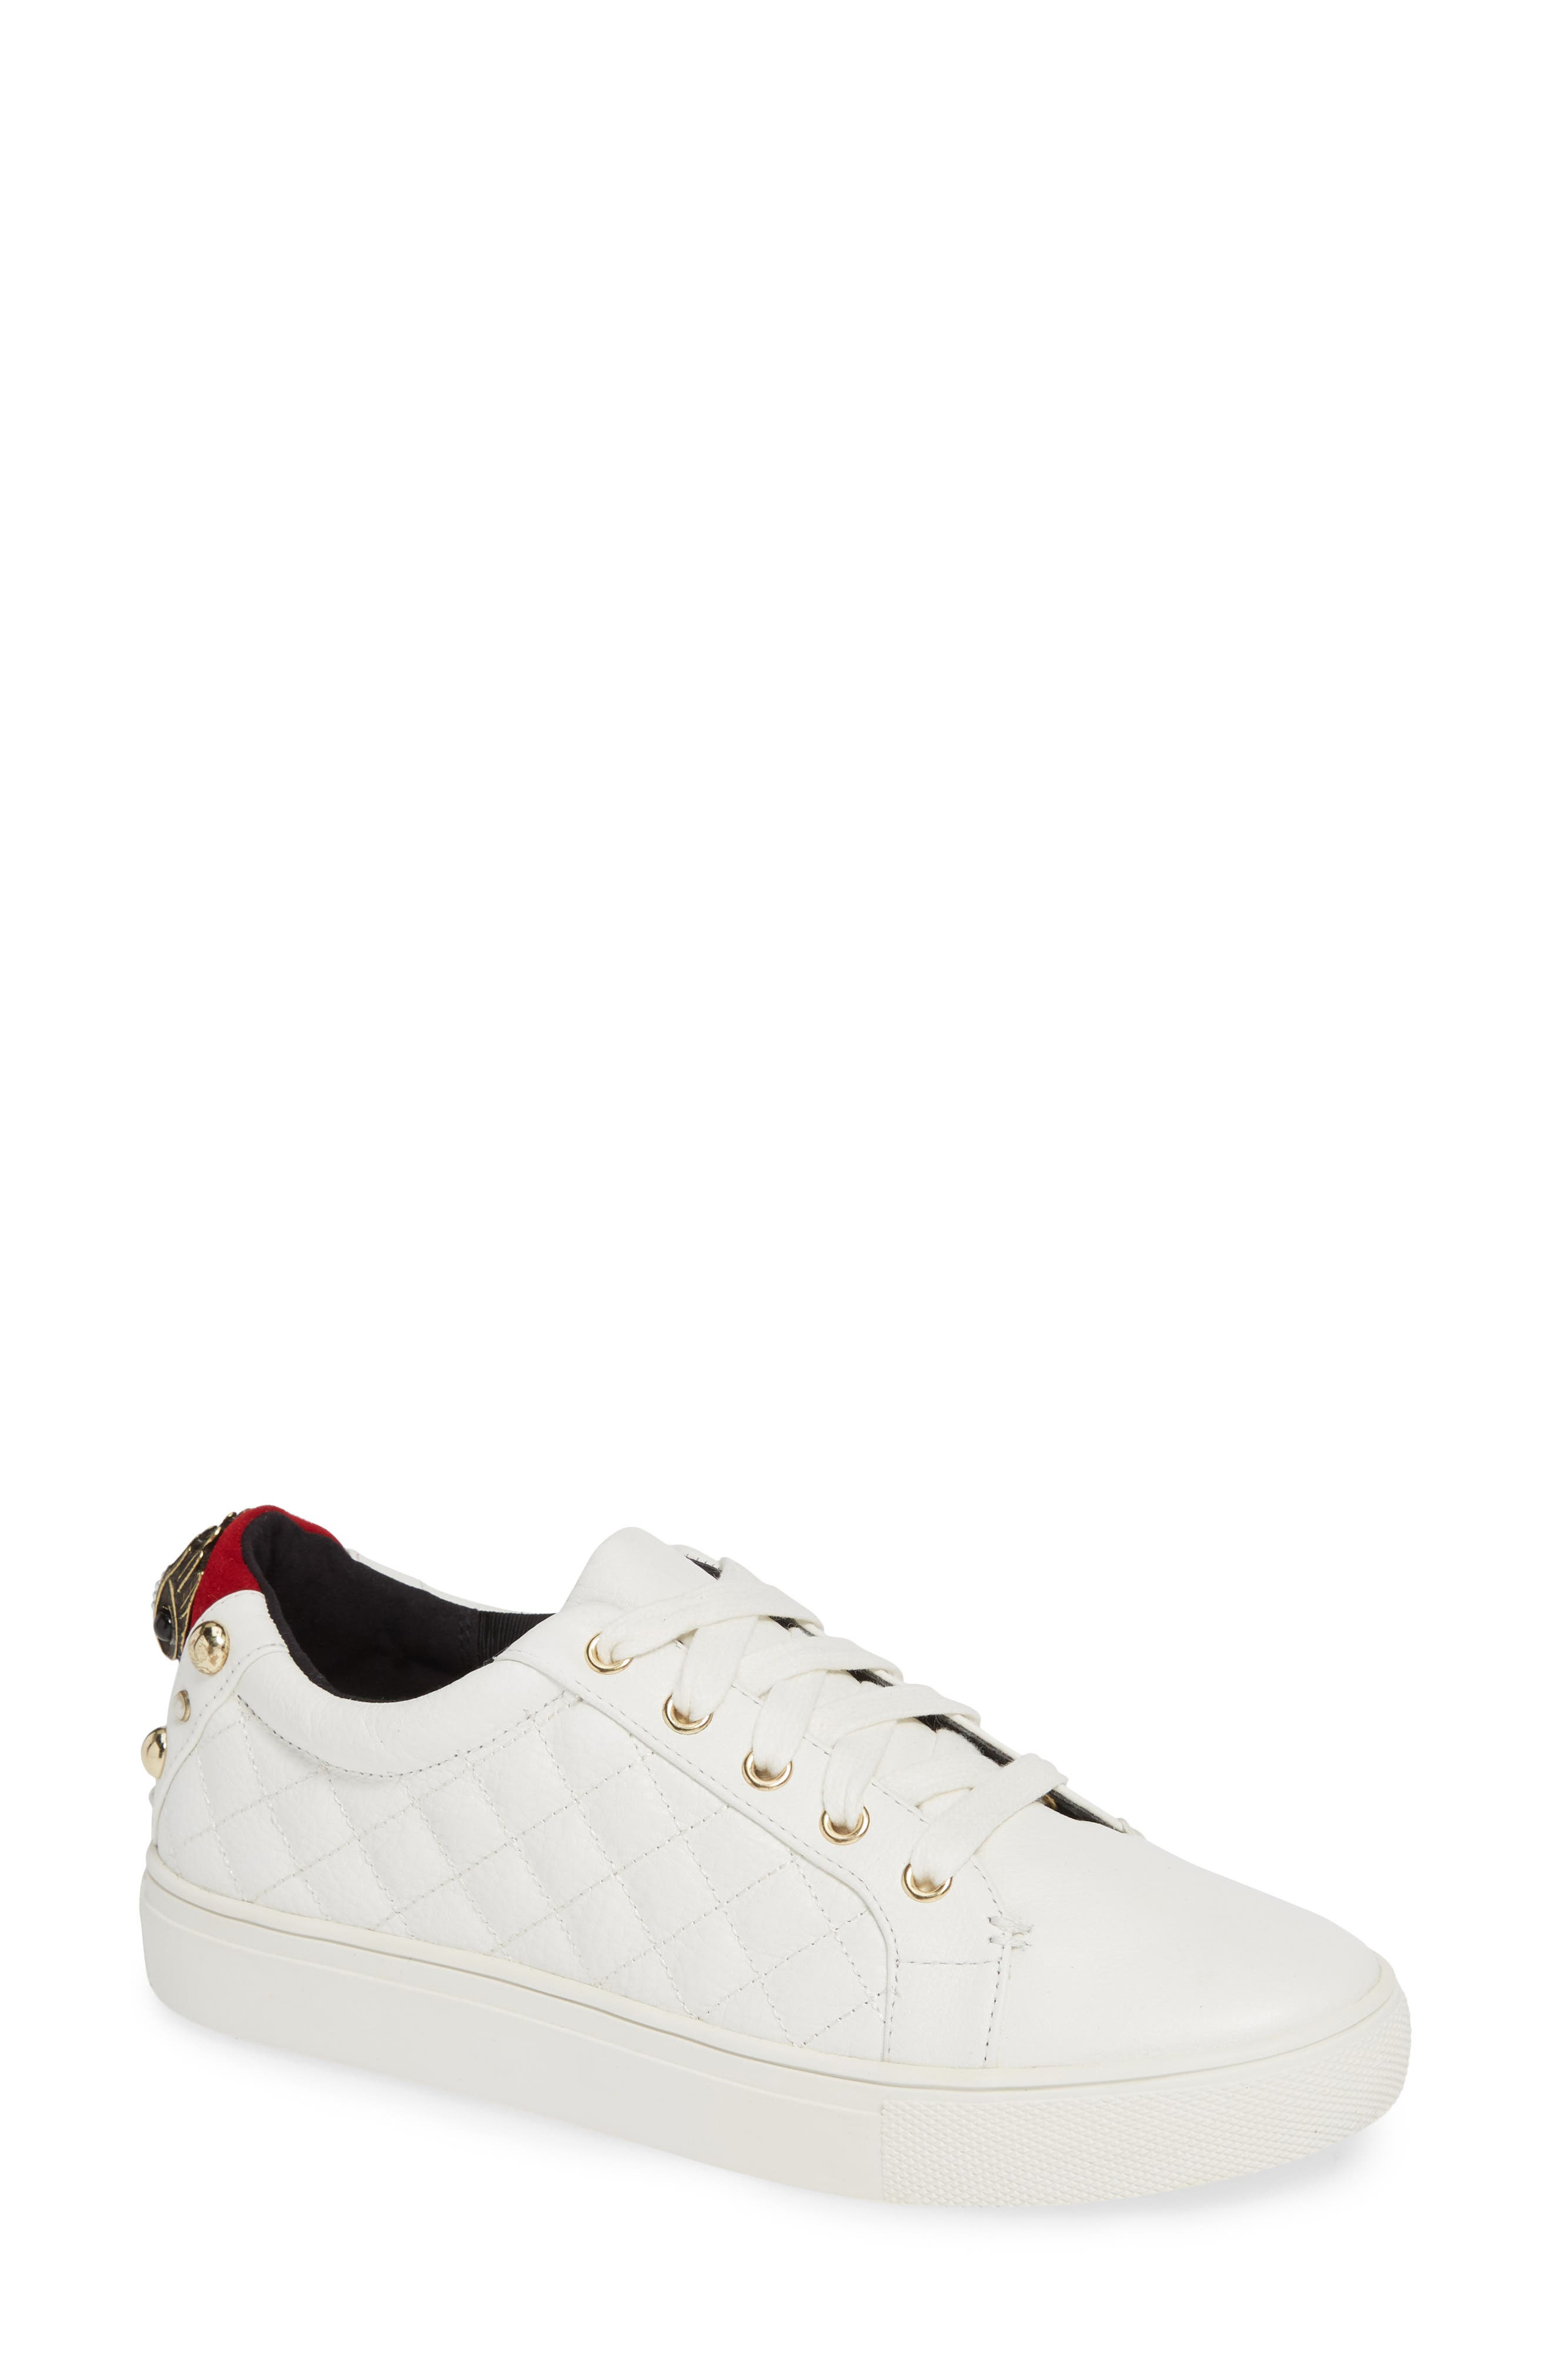 KURT GEIGER Women'S Ludo Leather Lace Up Sneakers in White